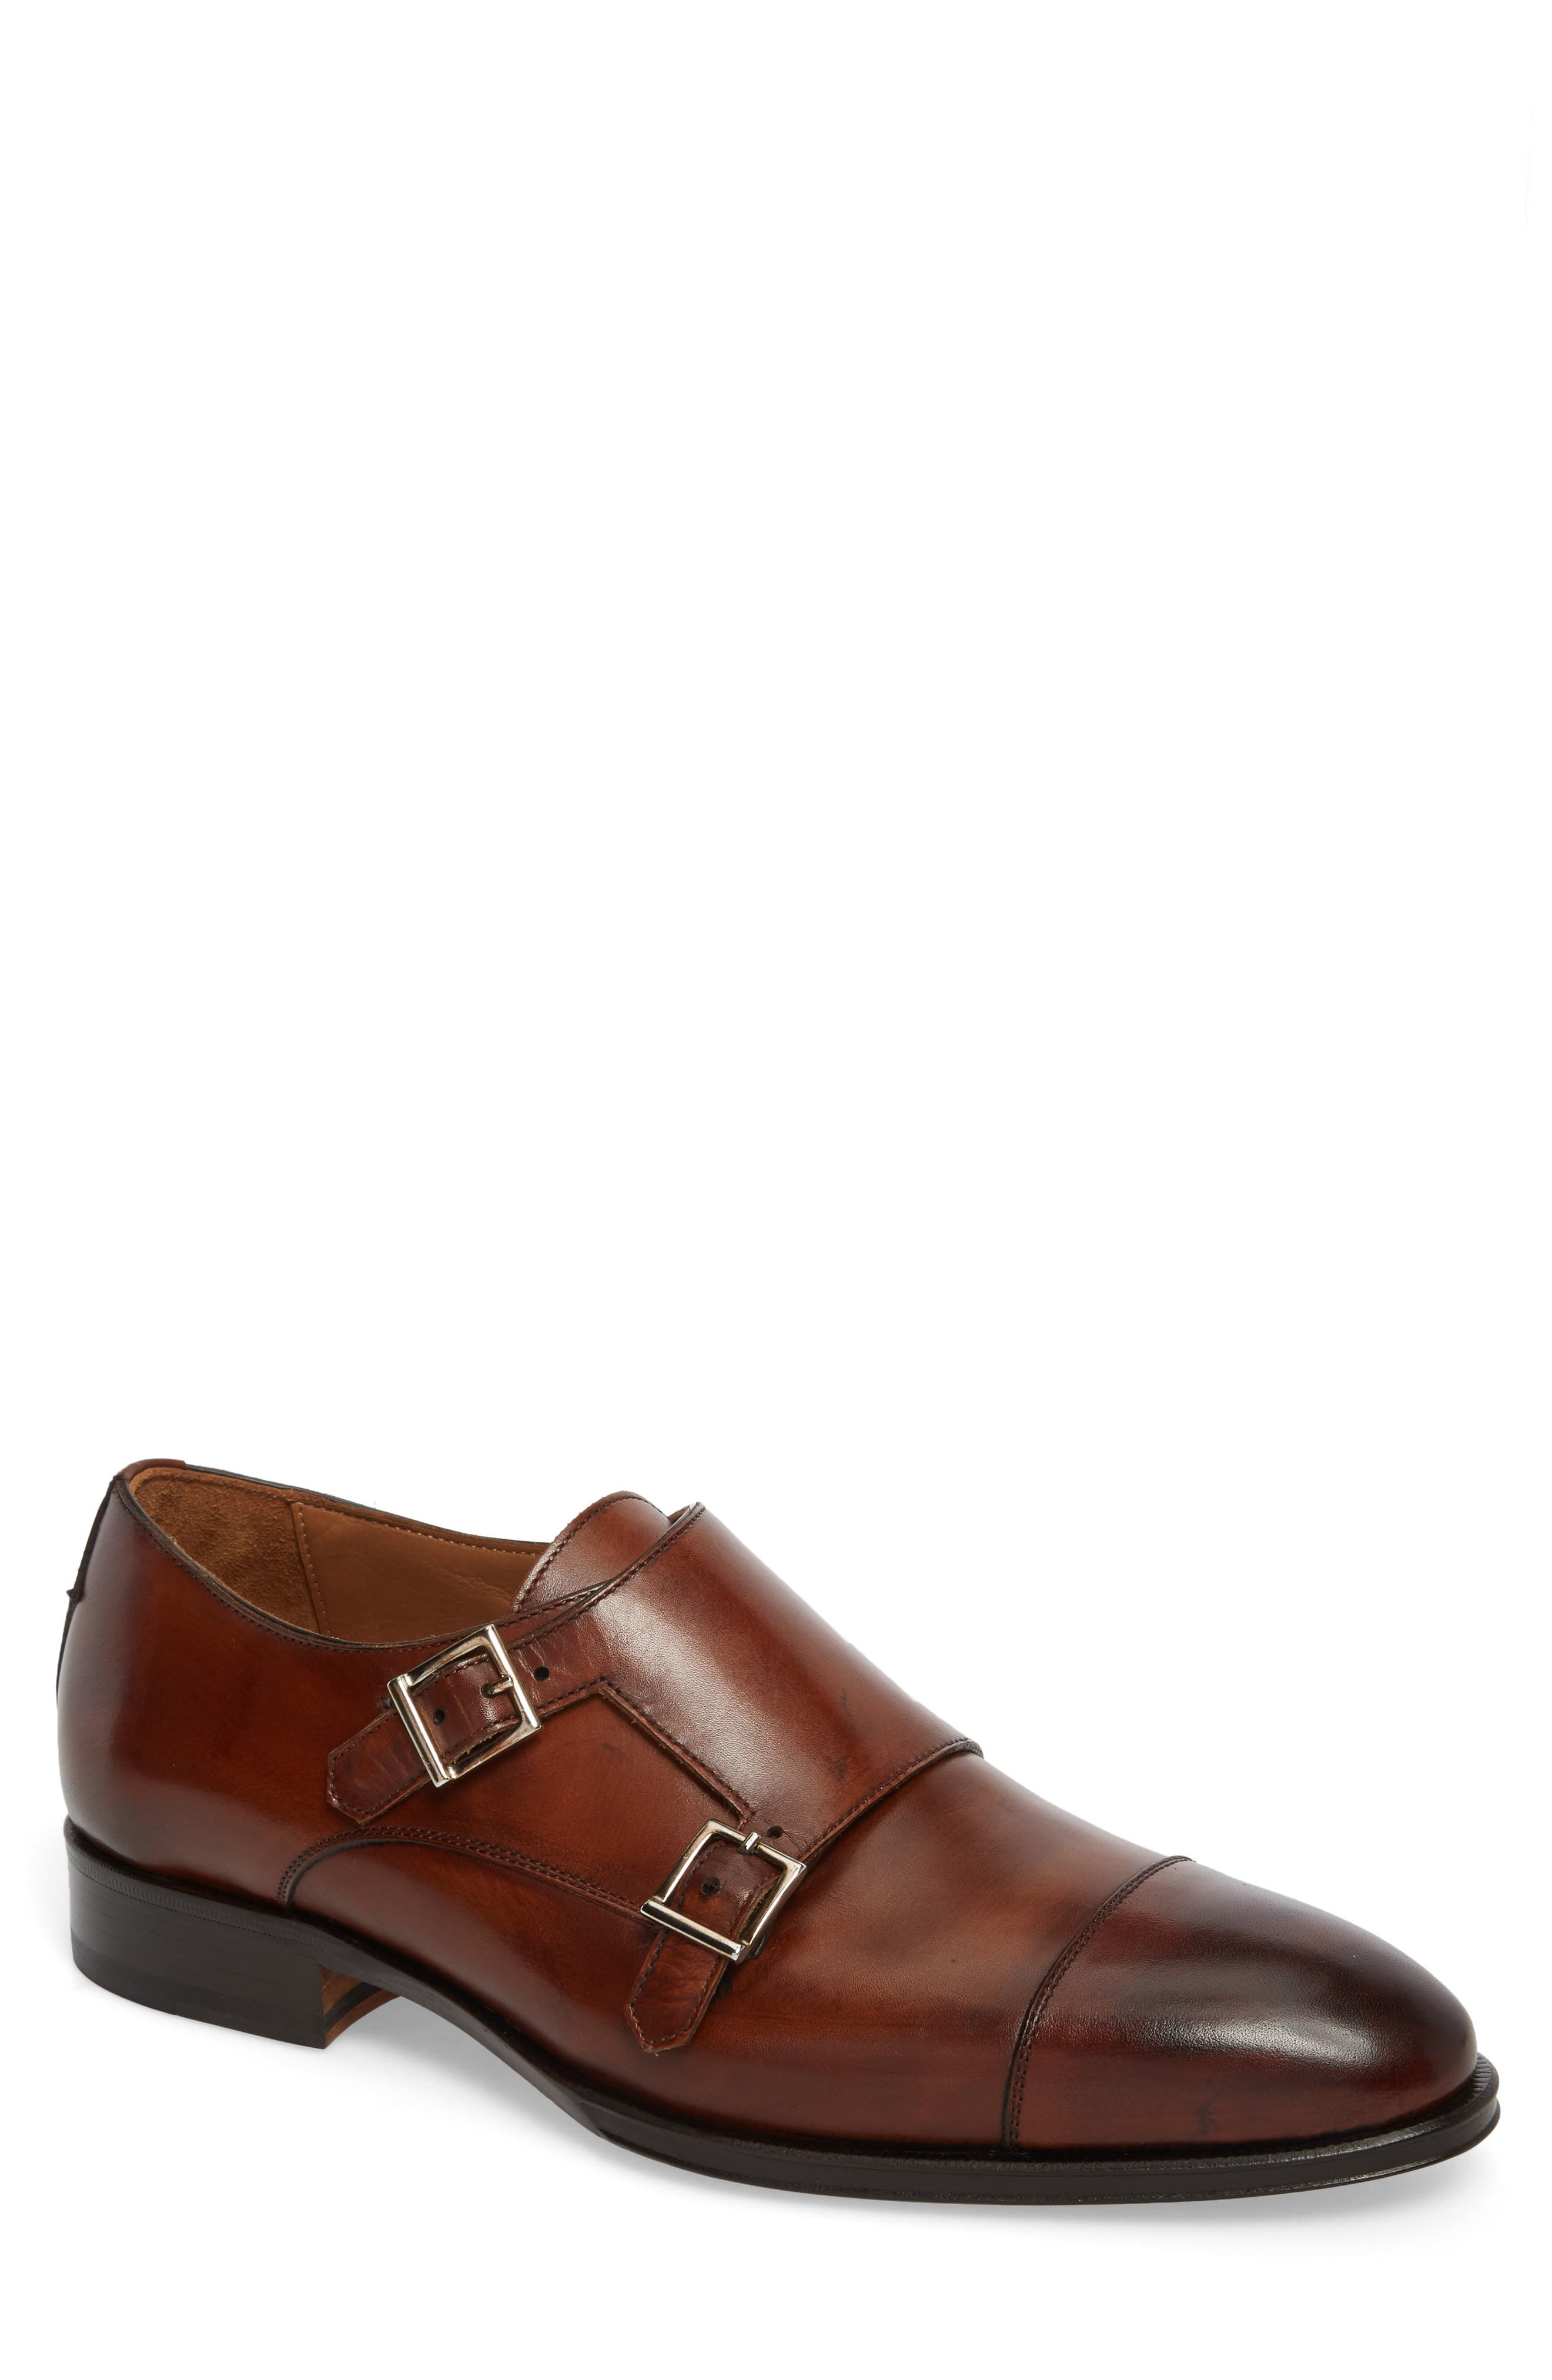 Gallo Bianco Double Monk Strap Shoe,                             Main thumbnail 1, color,                             Marble Brown